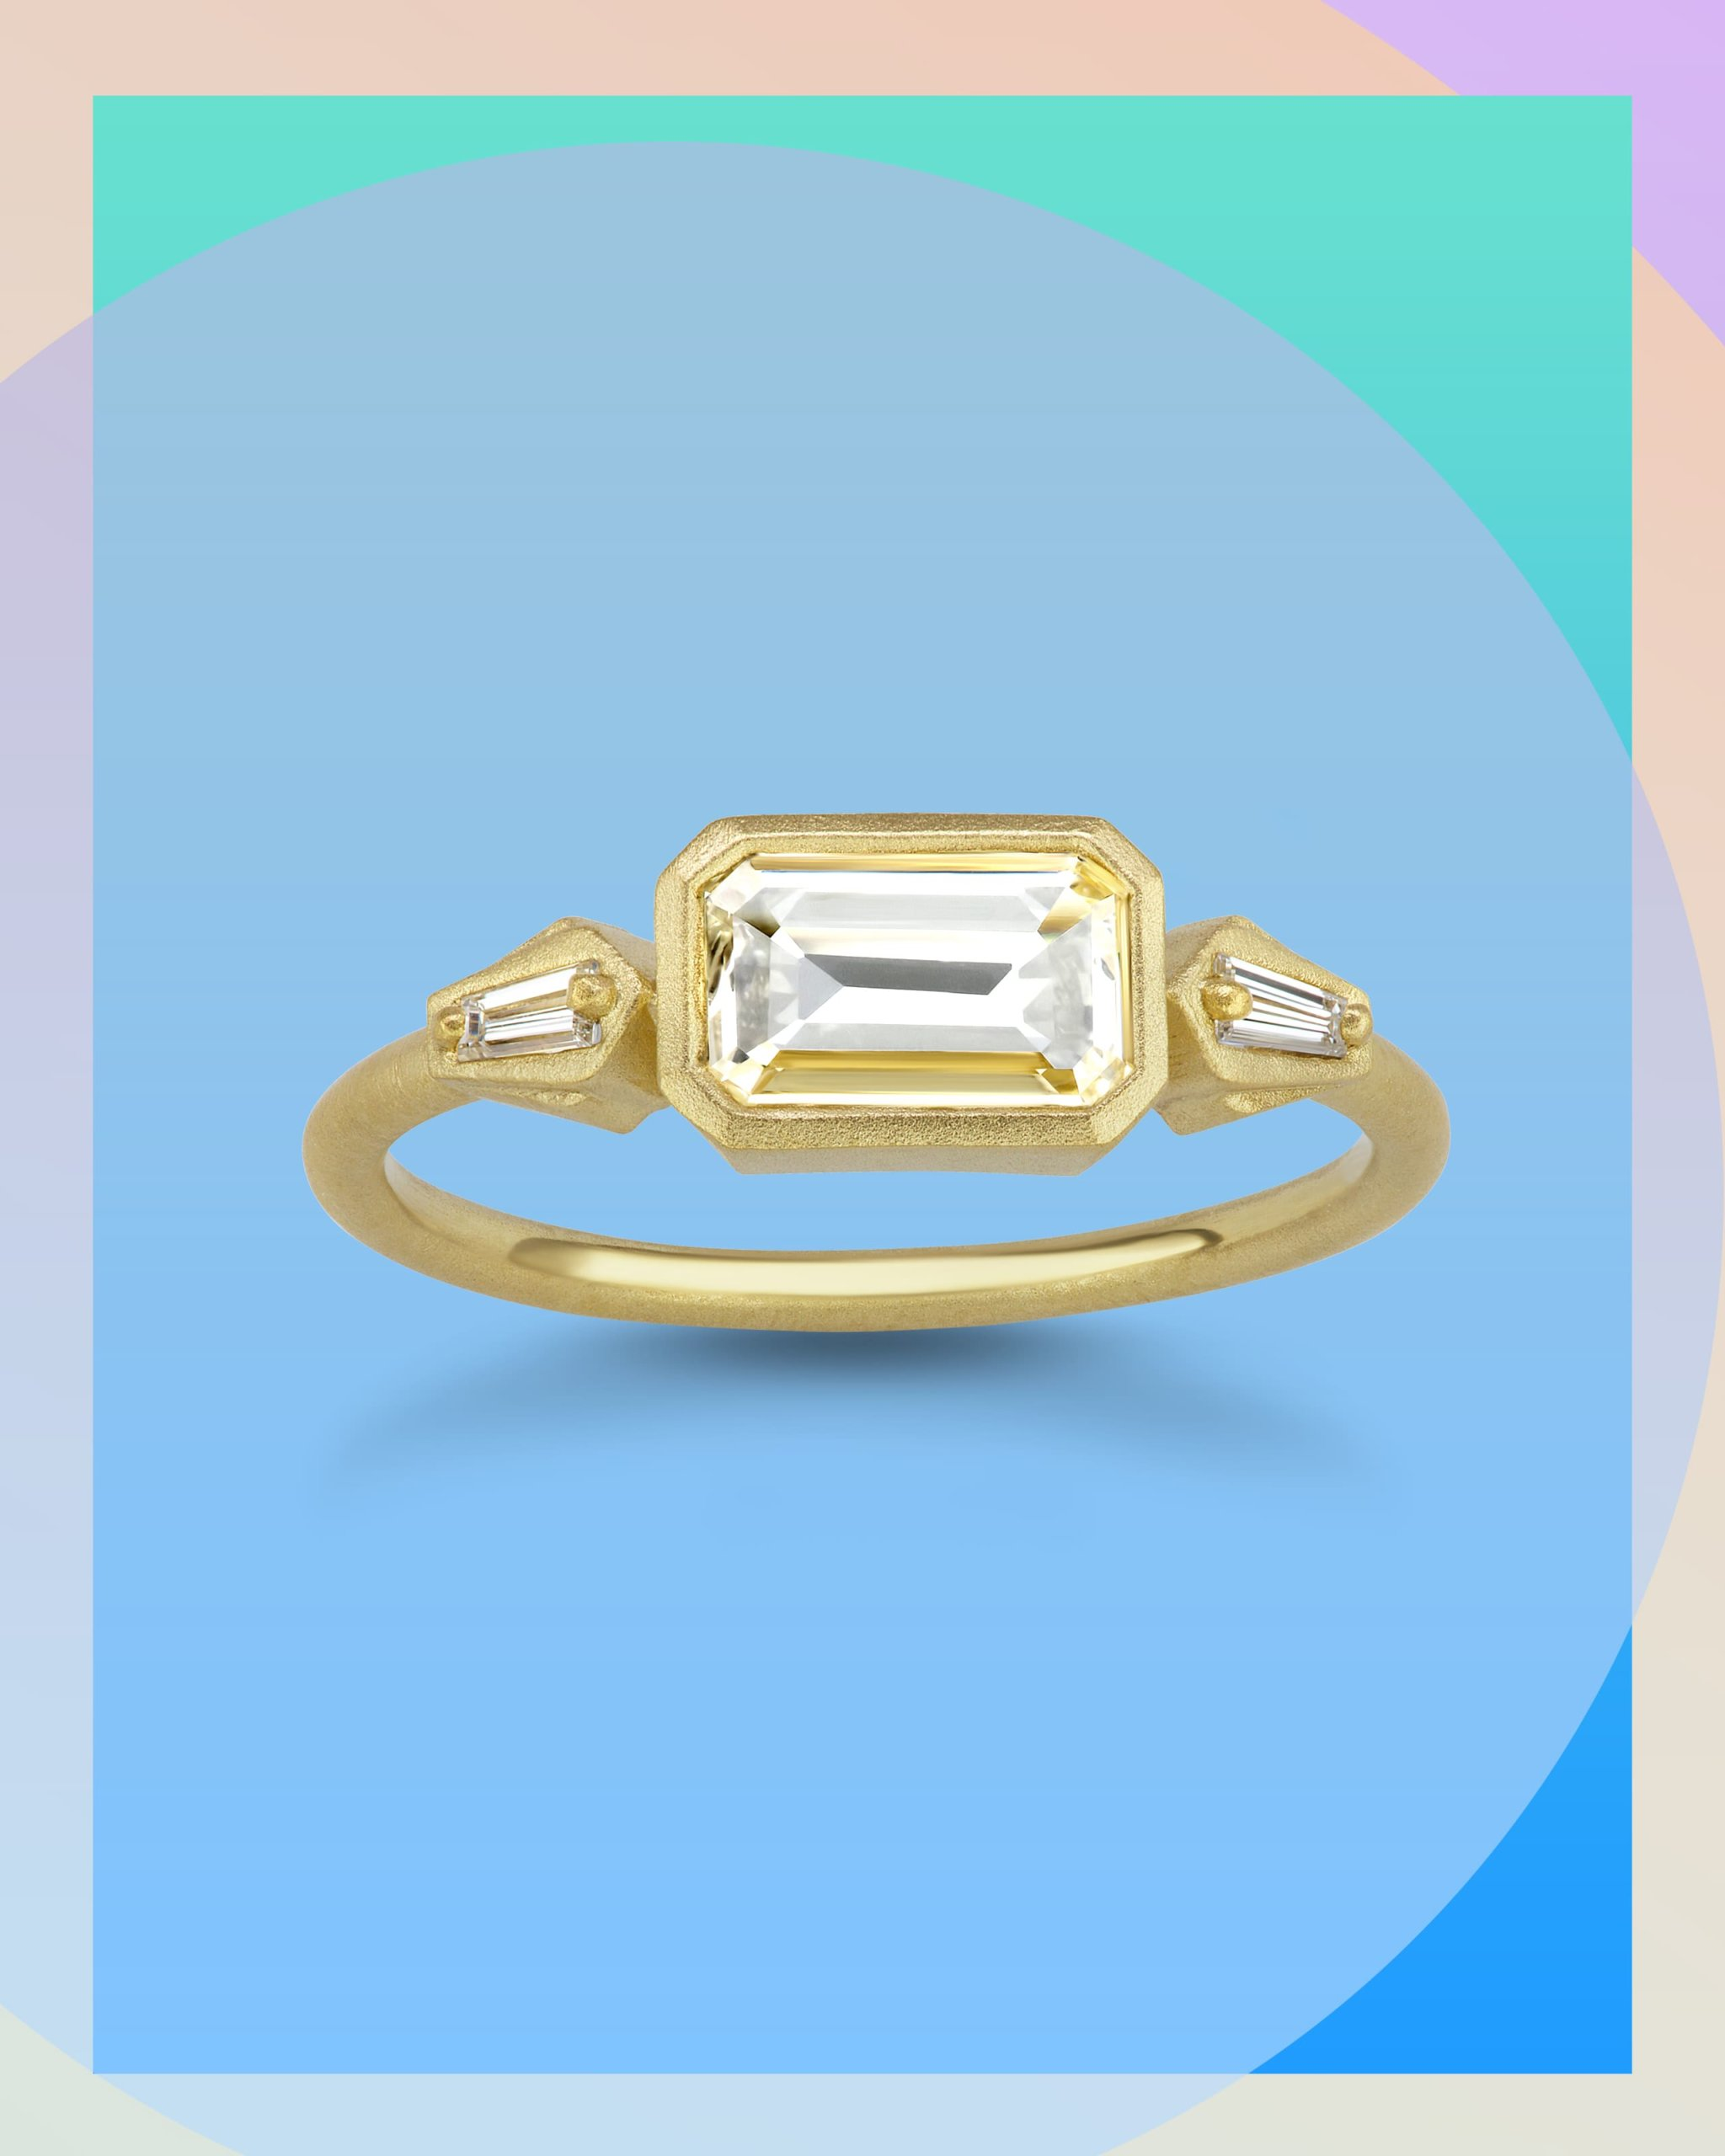 Emerald cut diamond hugged by baguette diamonds on an east west engagement ring with a yellow gold band from Michelle Fantaci